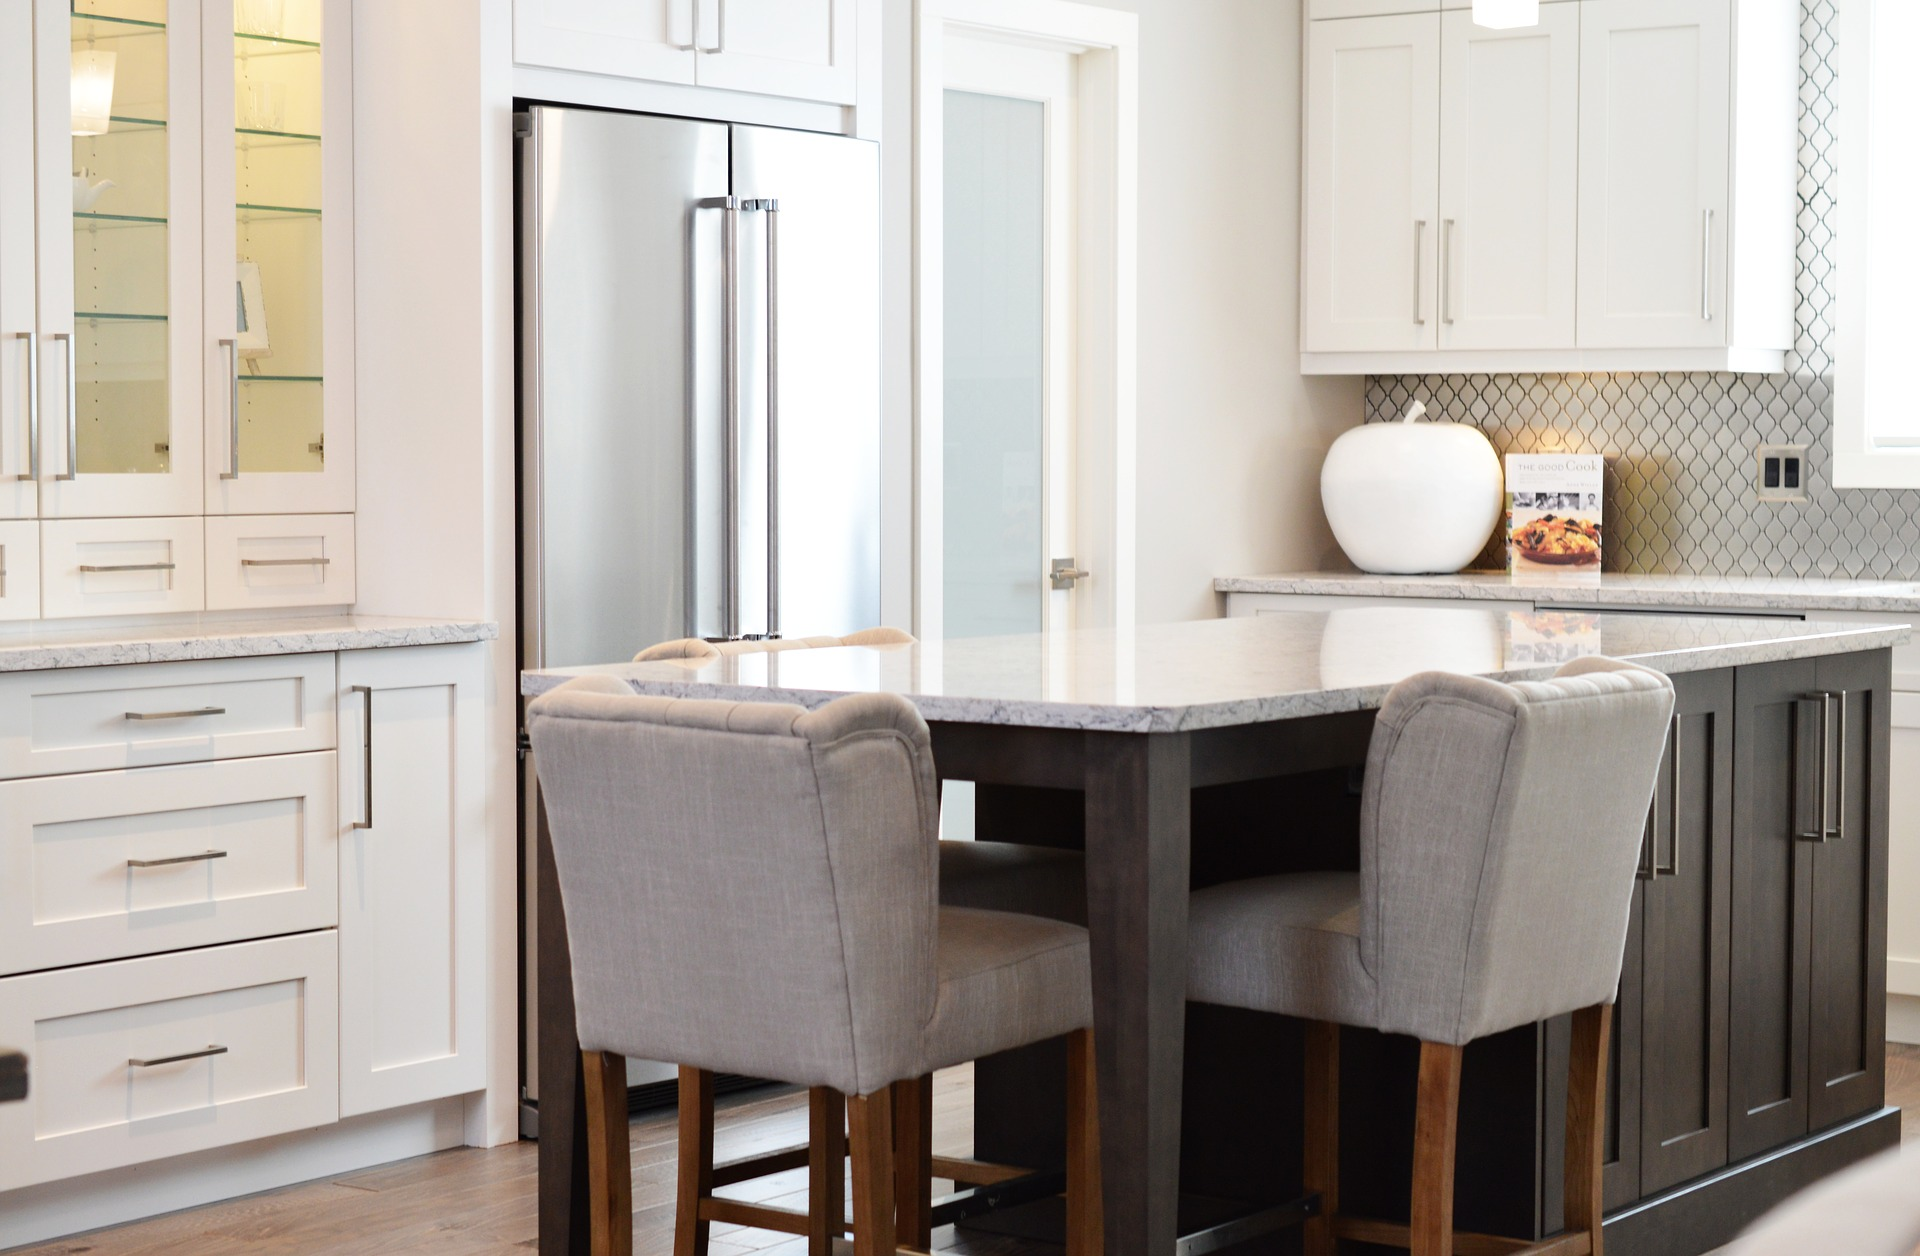 4 Amazing Finish Options For Kitchen Cabinets